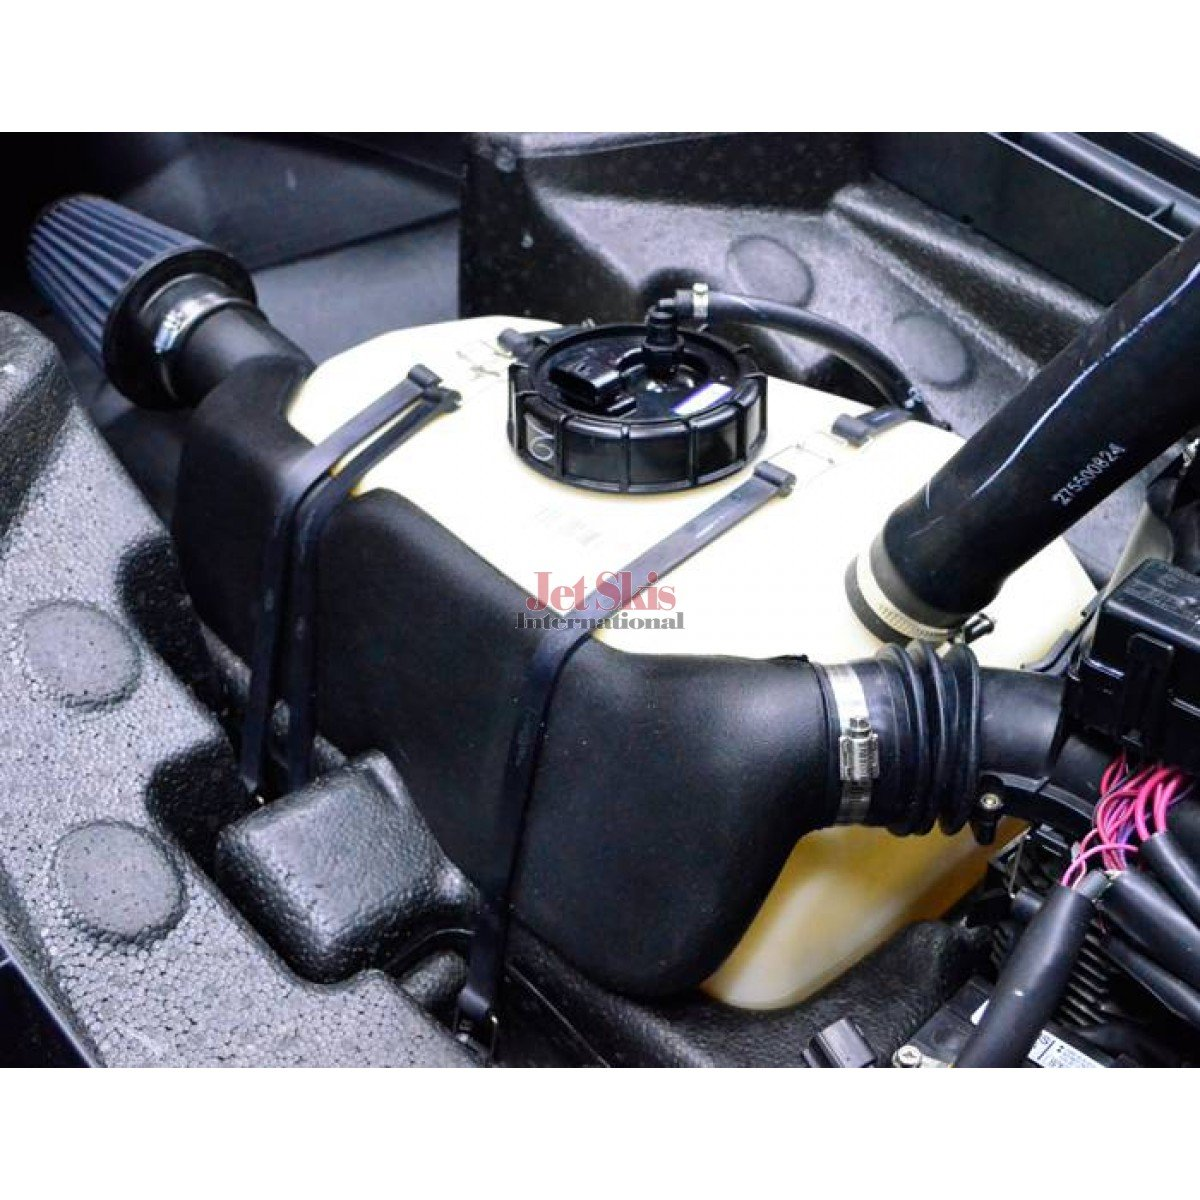 SEA DOO SPARK COLD AIR INTAKE BY RIVA